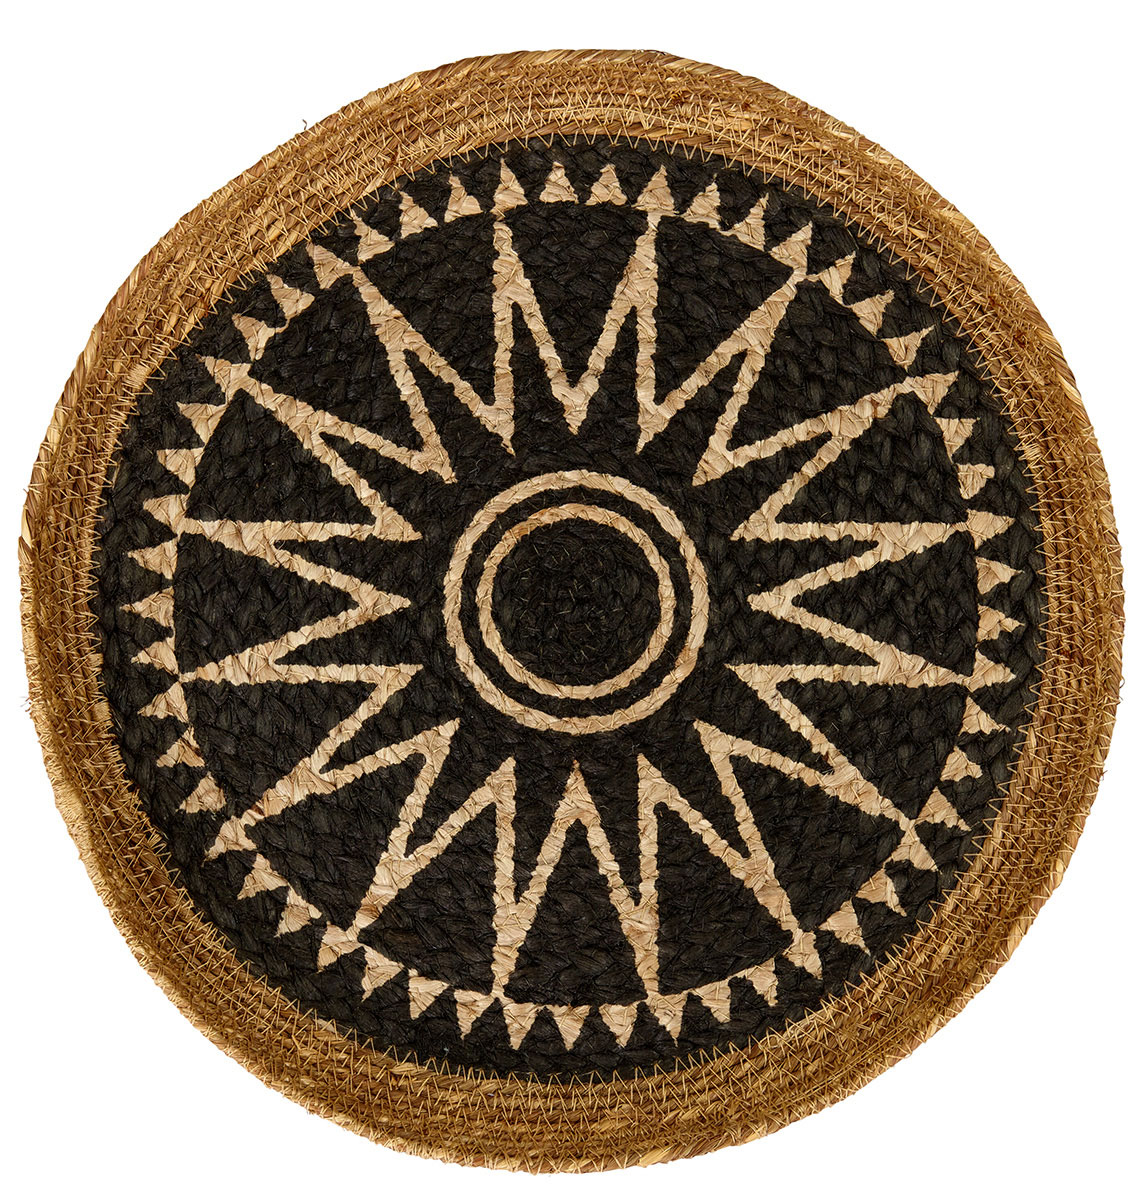 Liv Small Round Jute Disc with Star Design